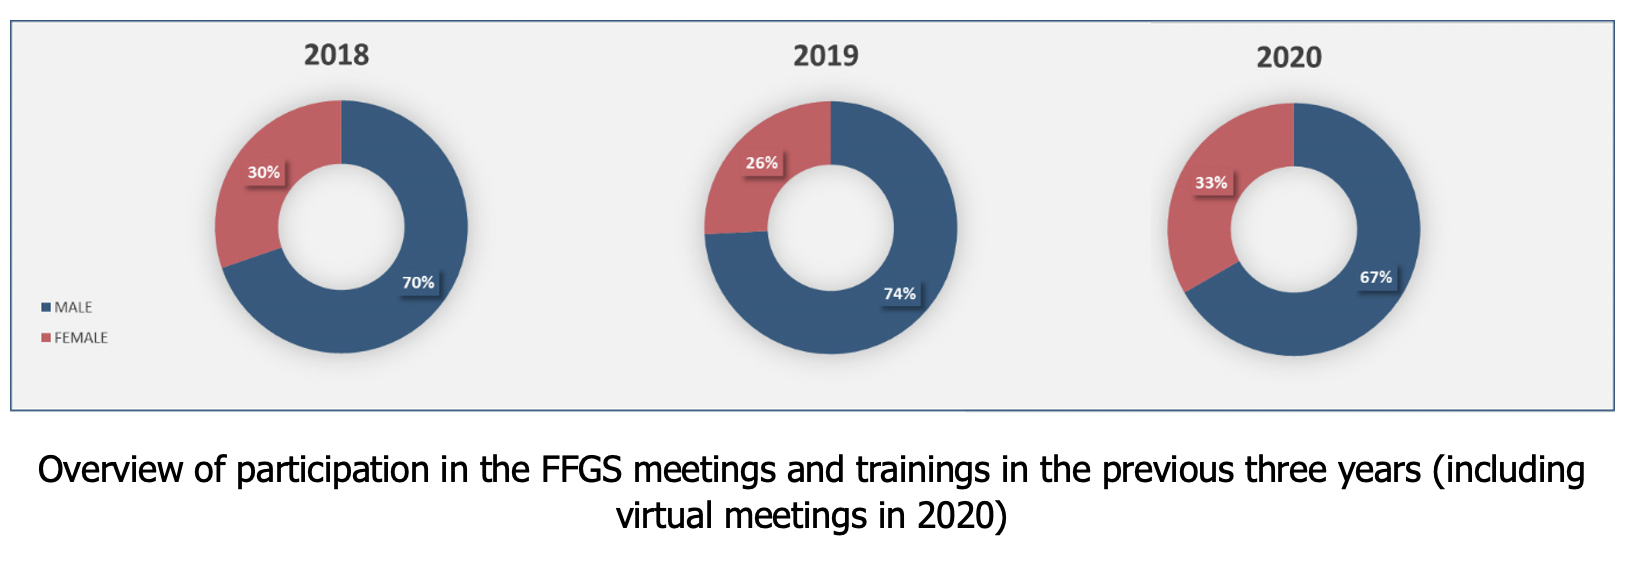 Overview of participation in the FFGS meetings and trainings